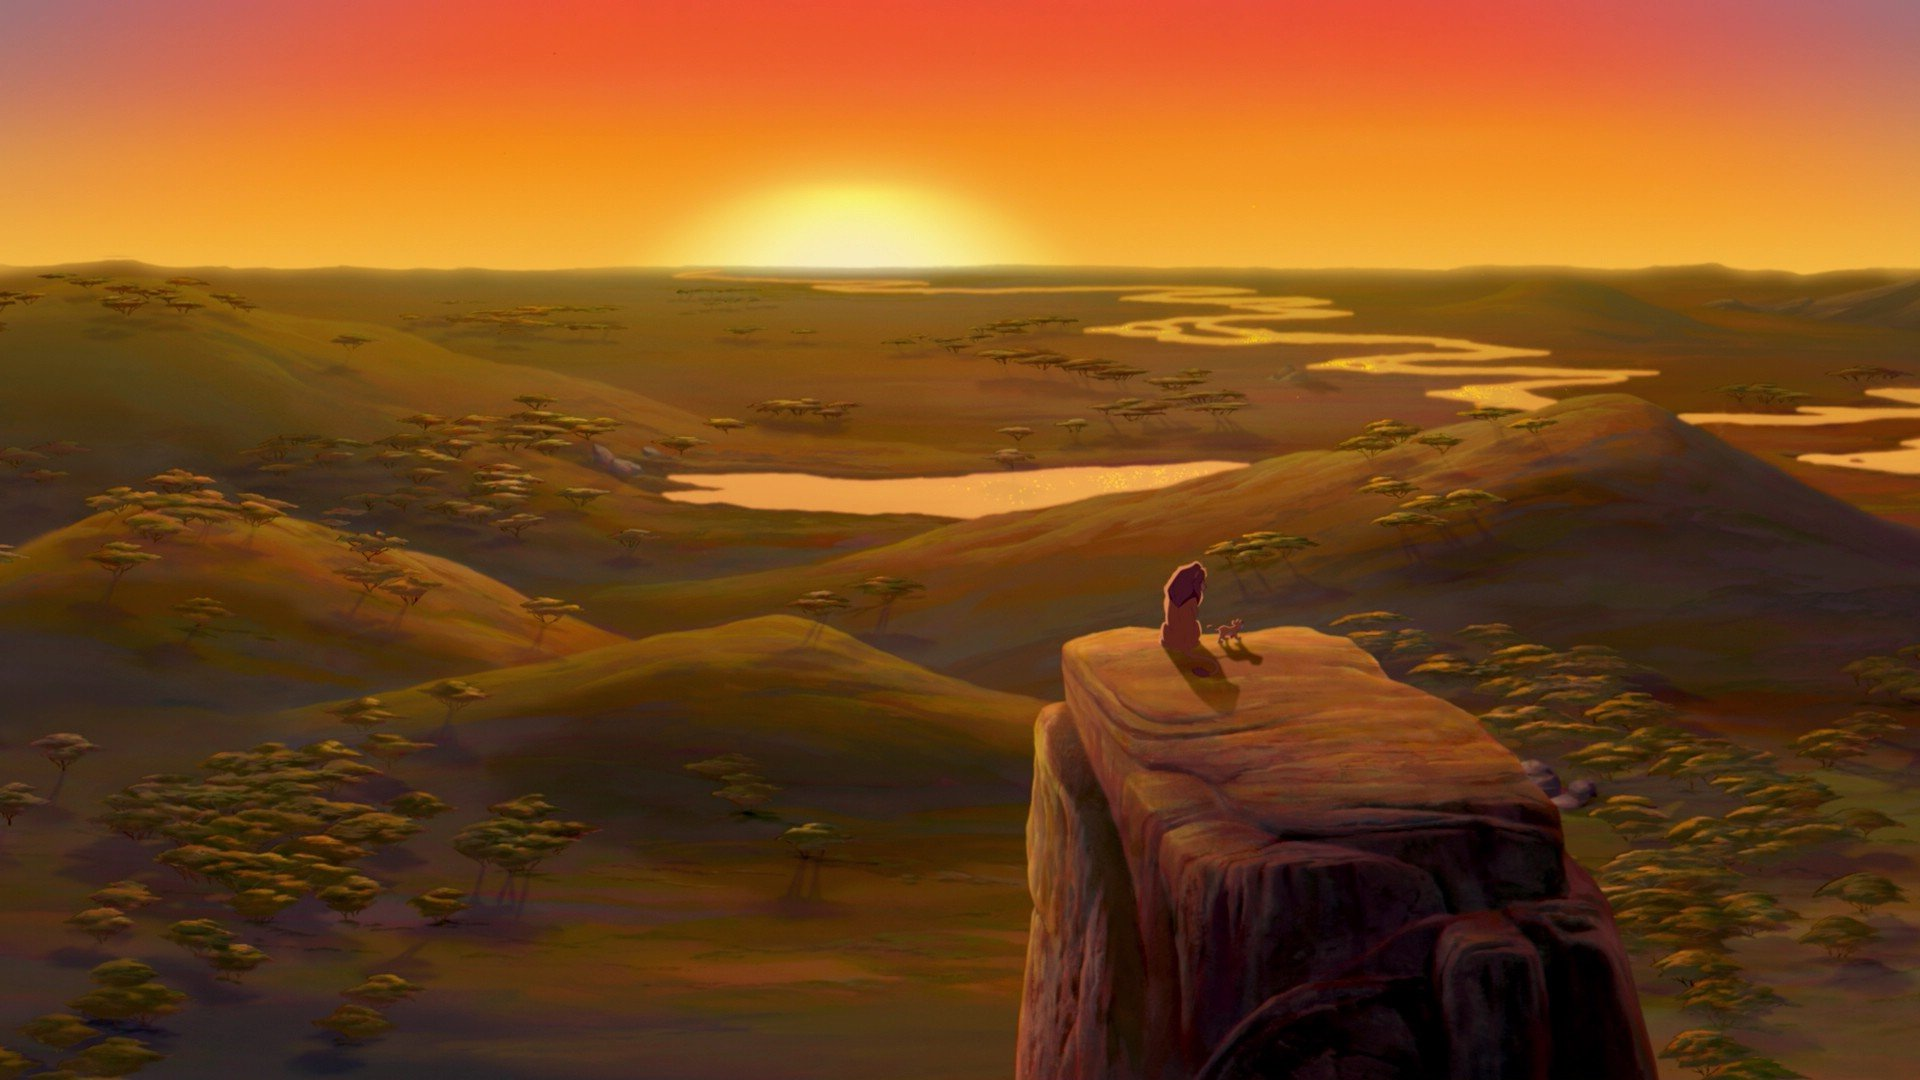 84 The Lion King HD Wallpapers